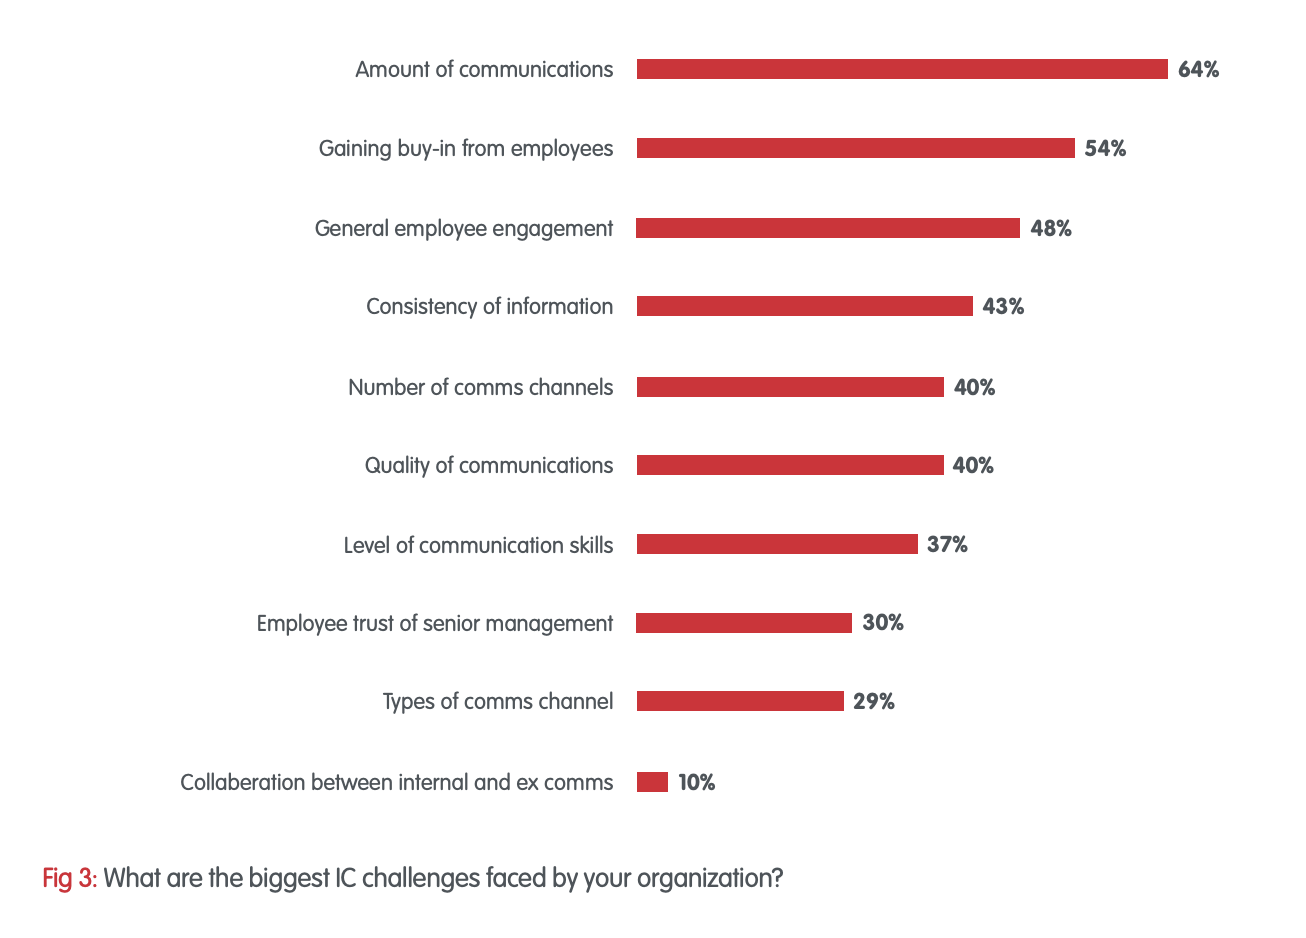 what are the biggest challenges faced by internal communications professionals?